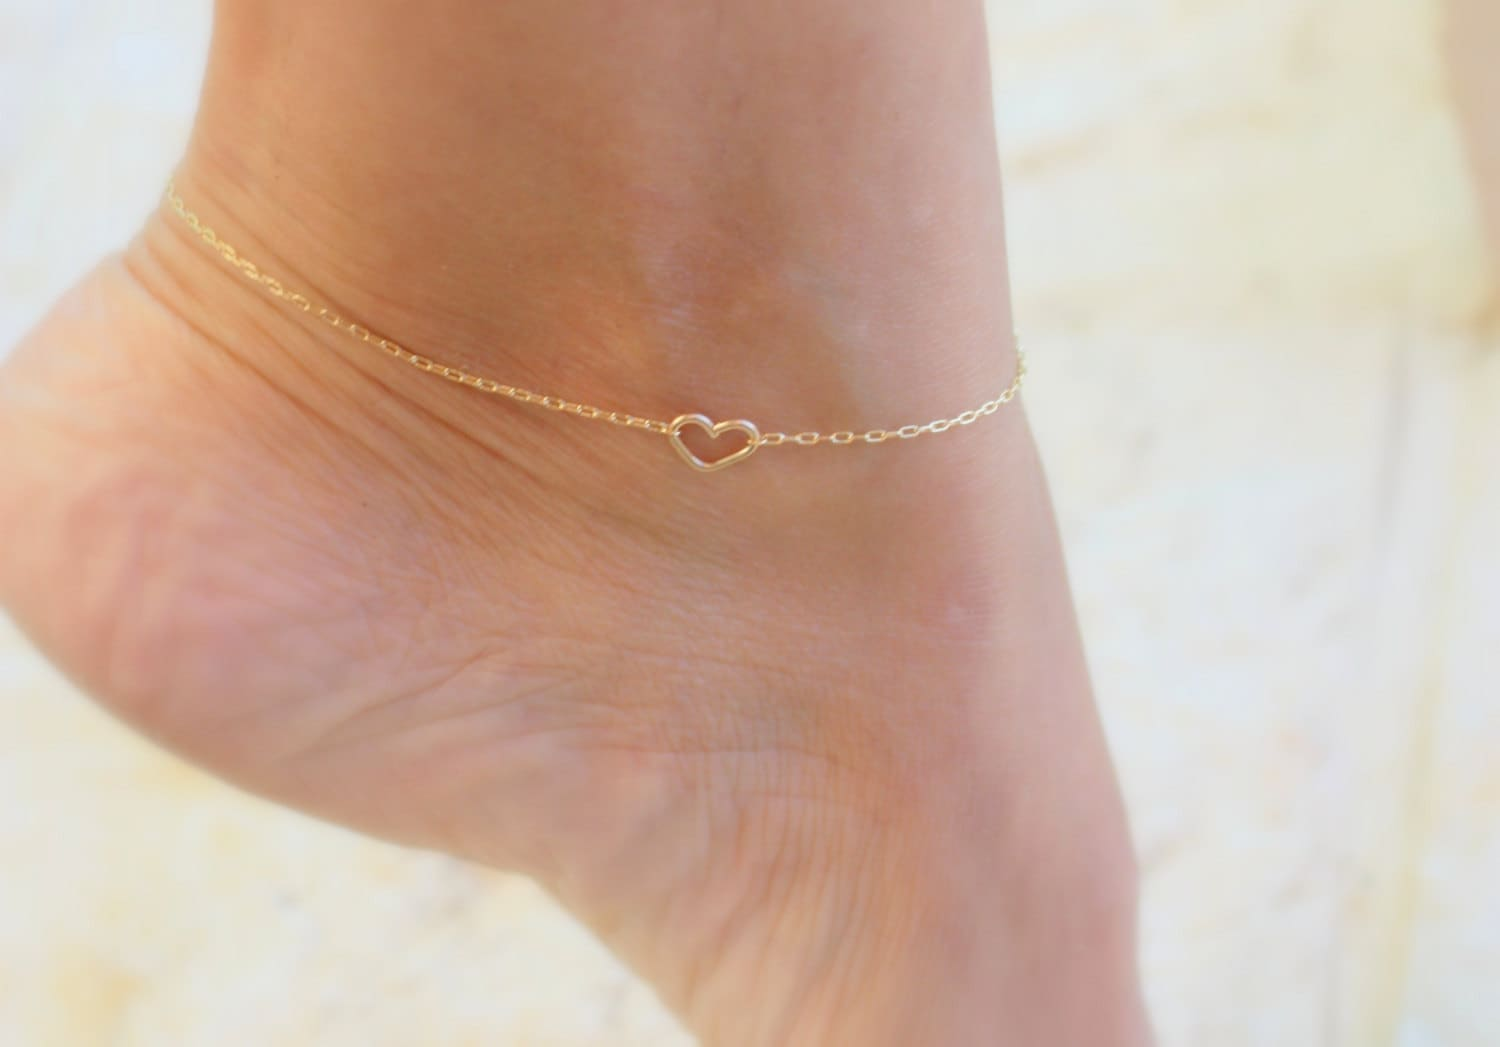 anklet yellow inch jewelry collections anklets more ankle lol bracelet accessories gold